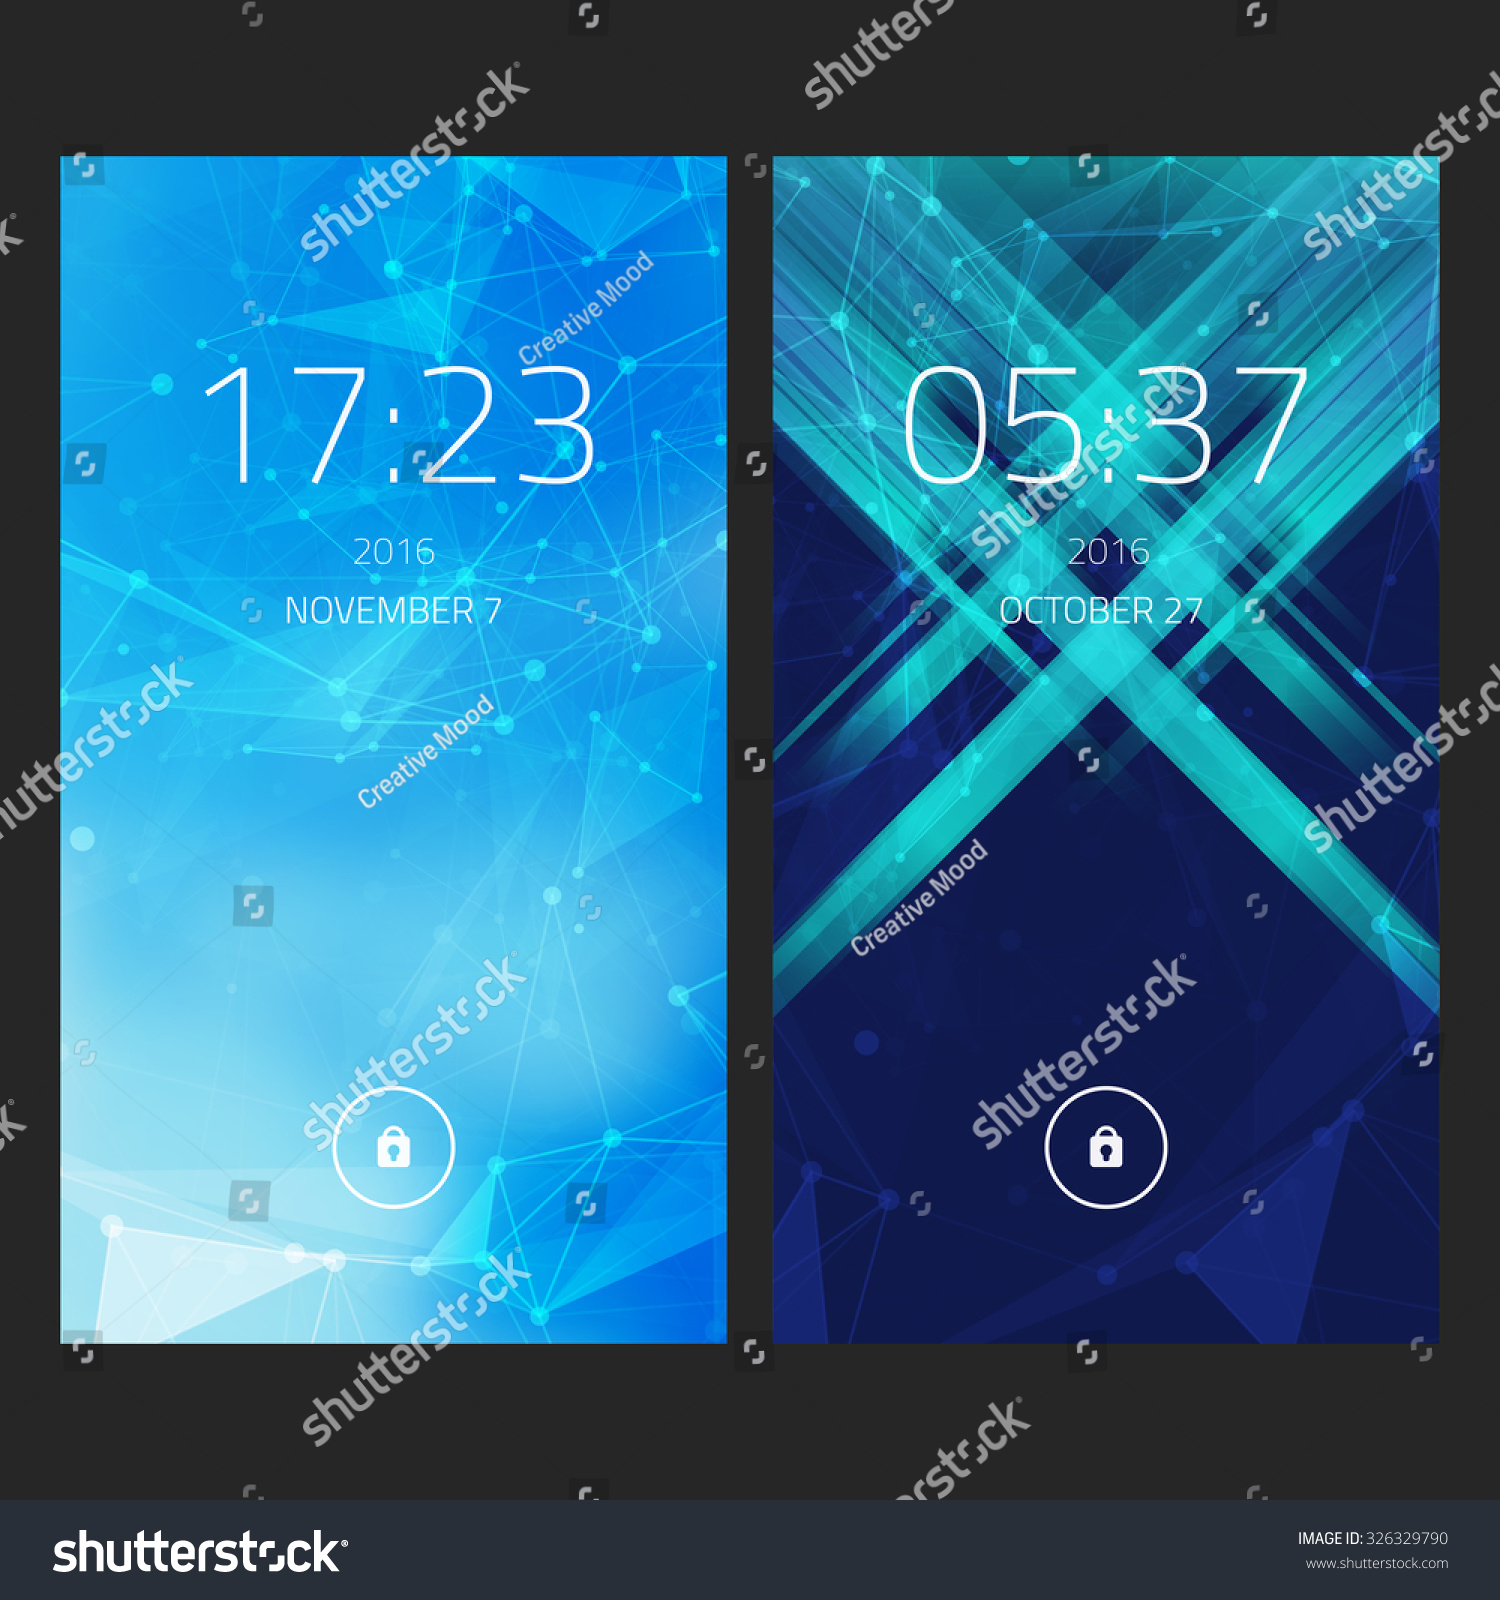 Mobile Interface Wallpaper Design Set Abstract Image Vectorielle De